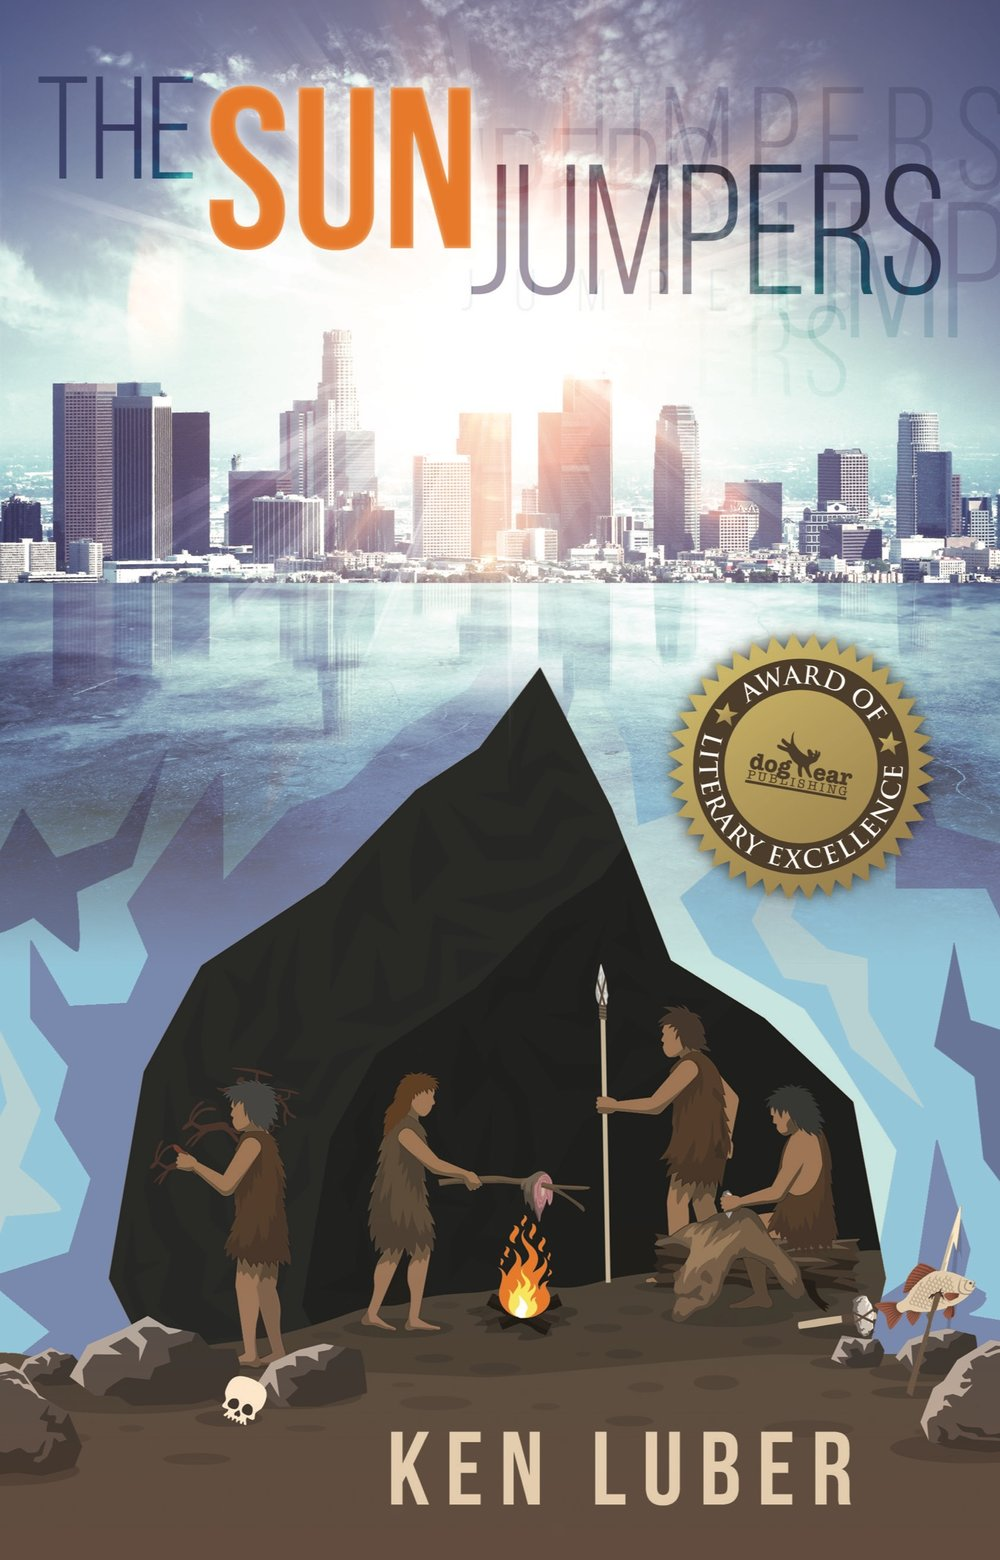 Find out more about Ken Luber's new award-winning novel...The Sun Jumpers - Click here to go to the